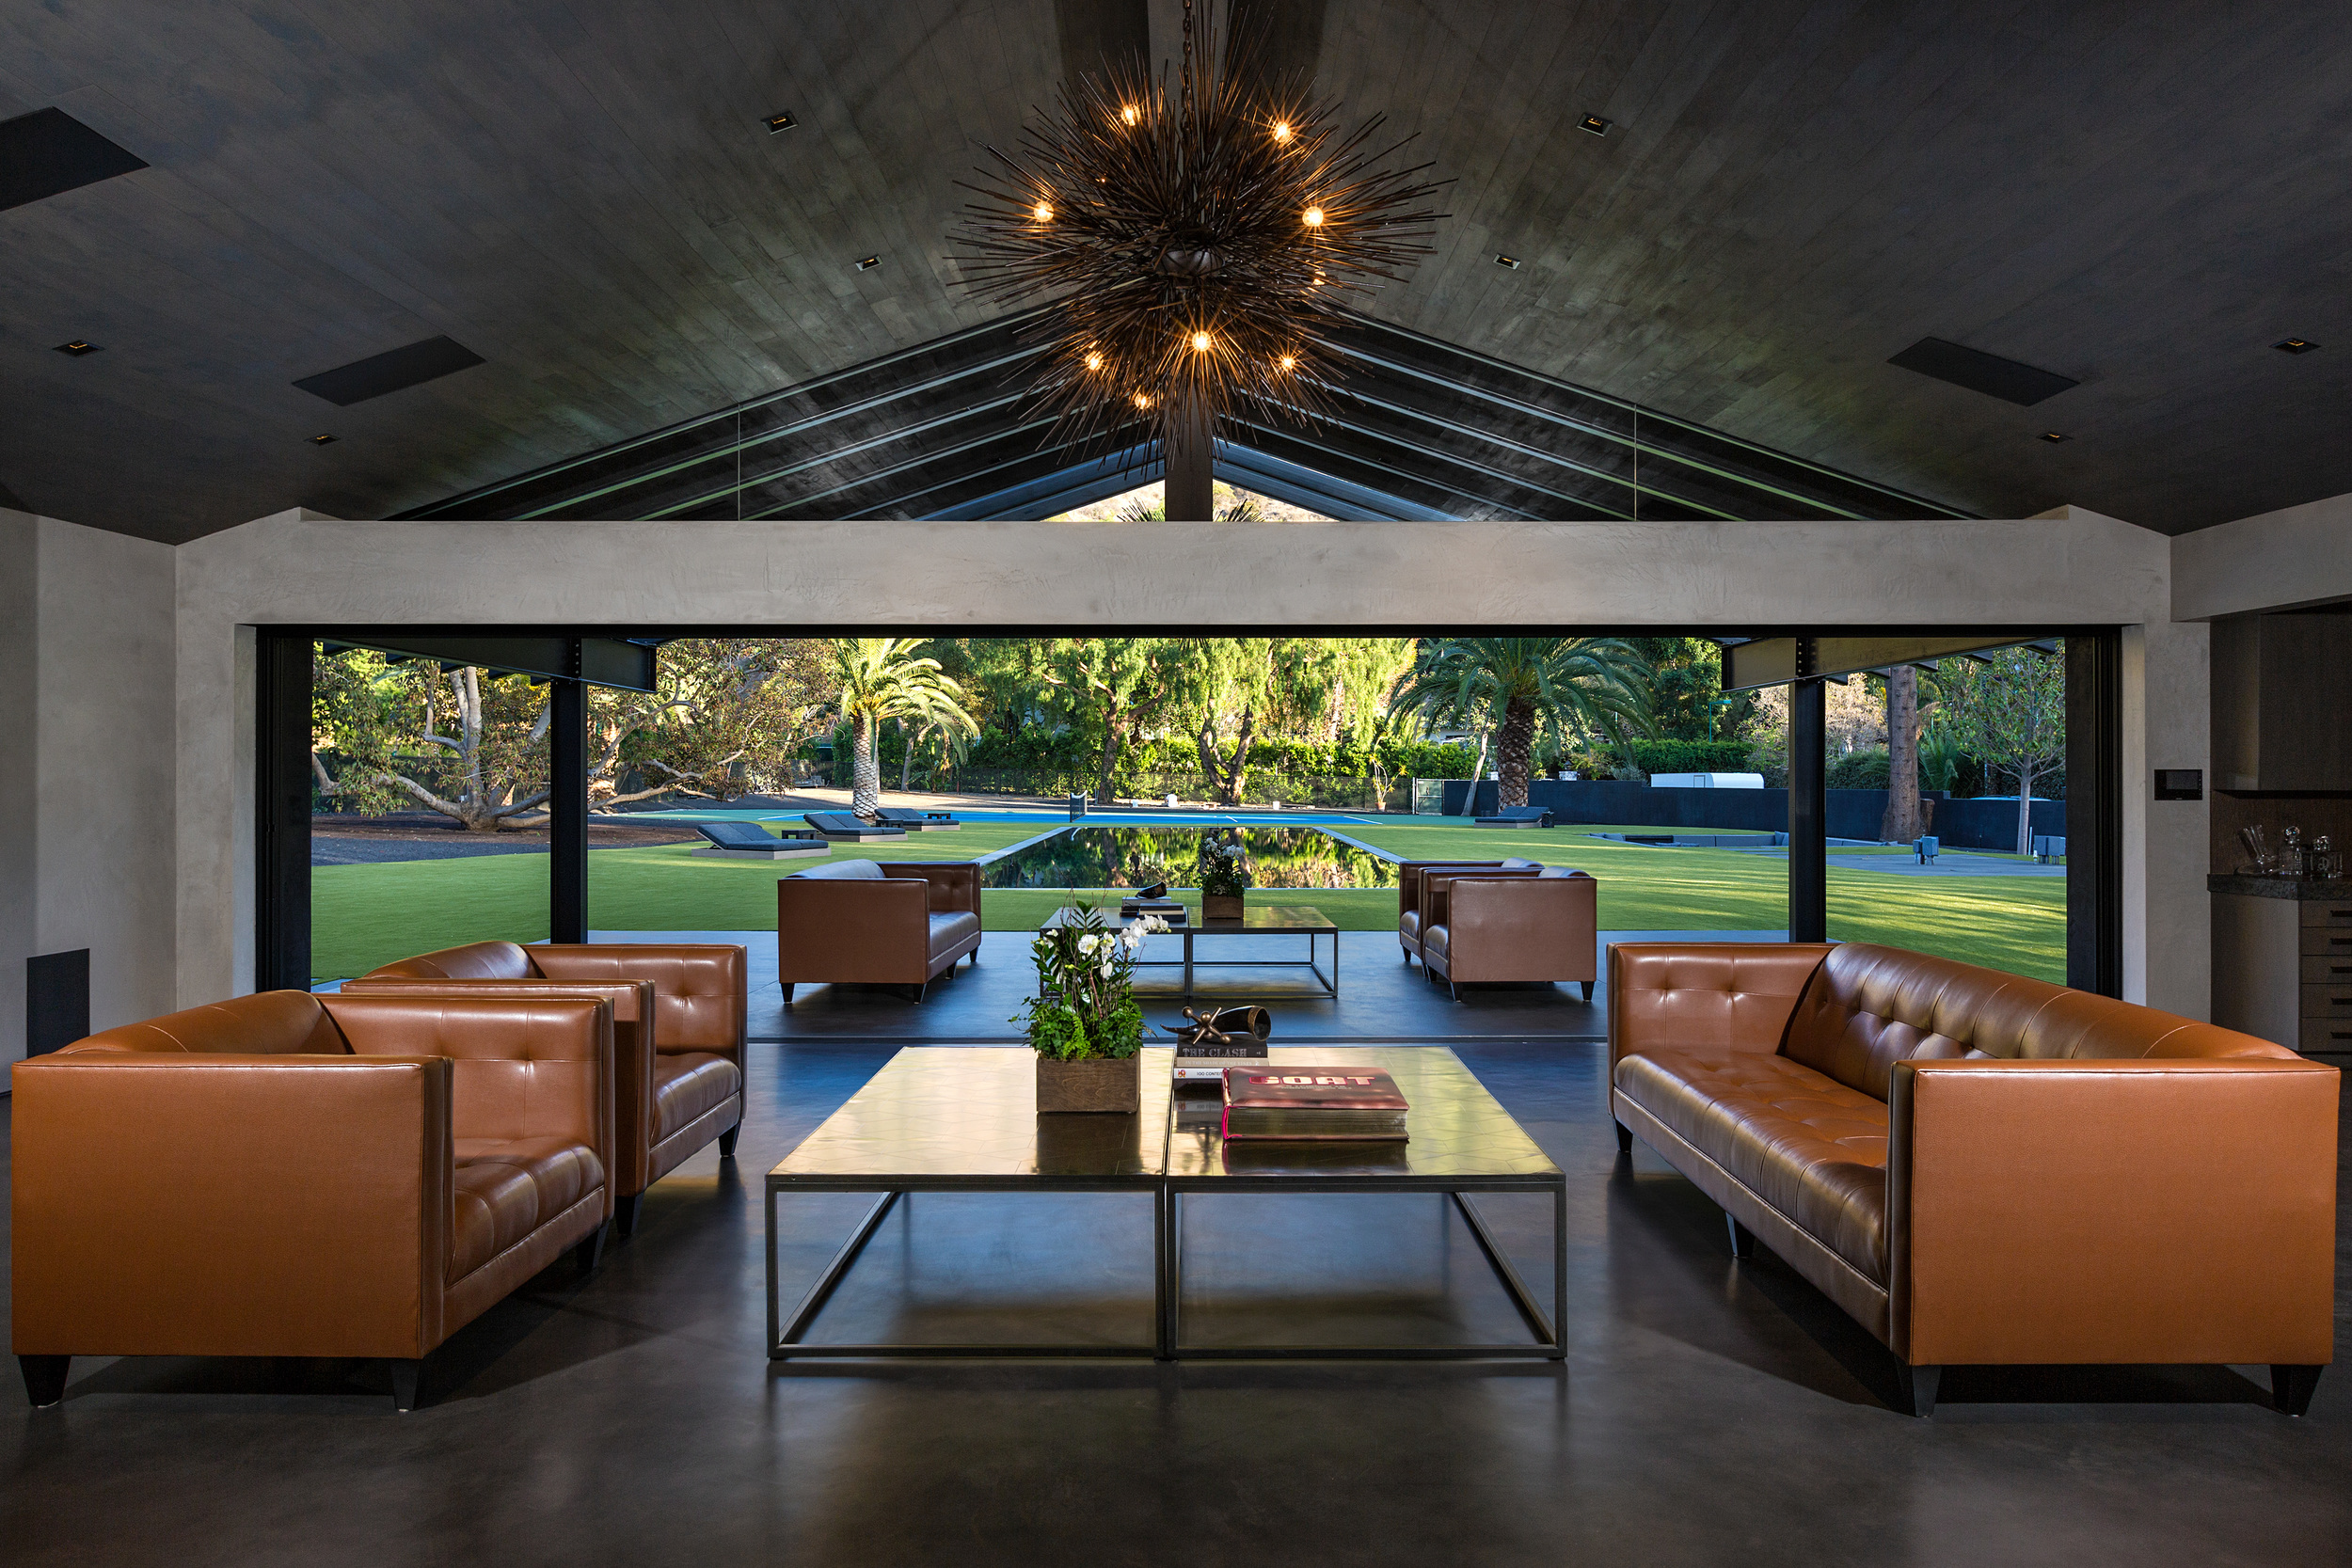 Colleen-Torres_Interior-Design-Concepts_ Serra Retreat Malibu-005.jpg